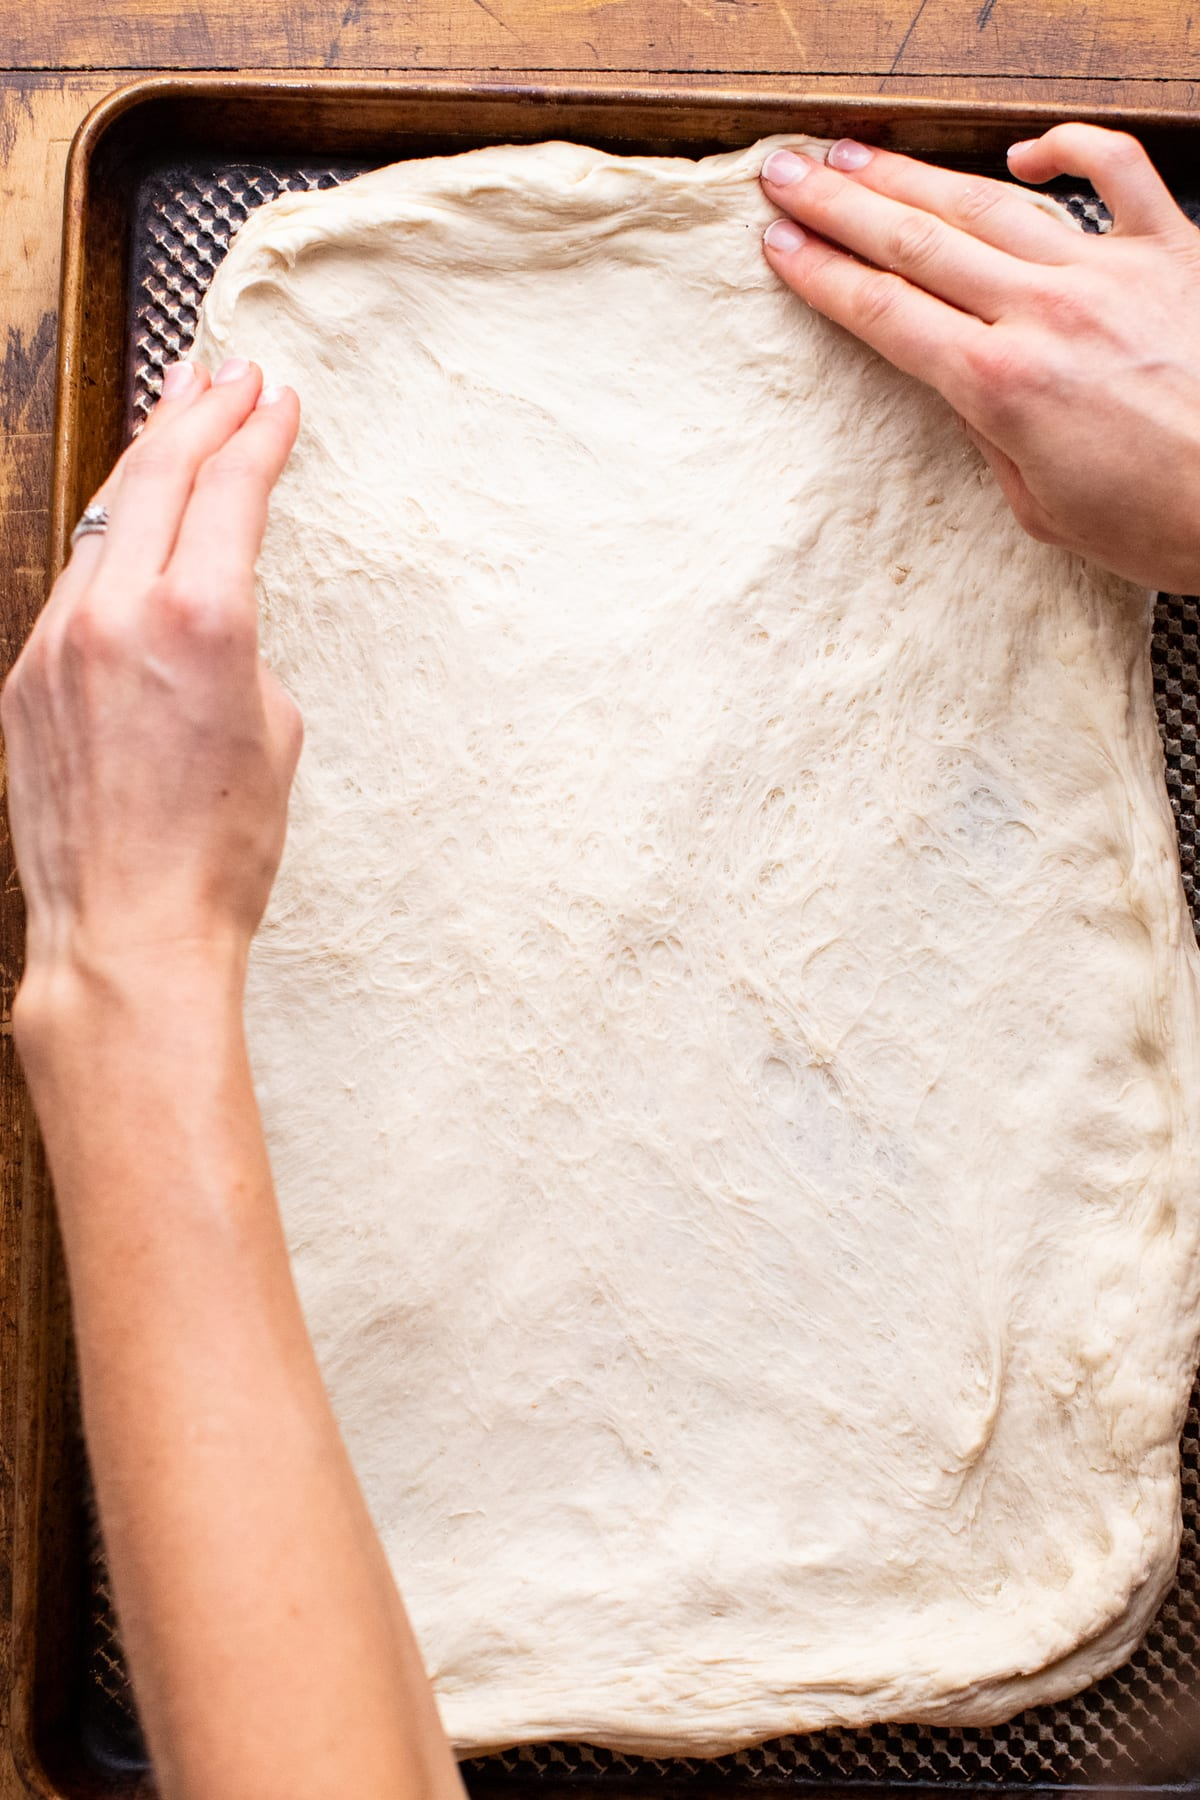 two hands forming pizza dough on a large sheet pan.